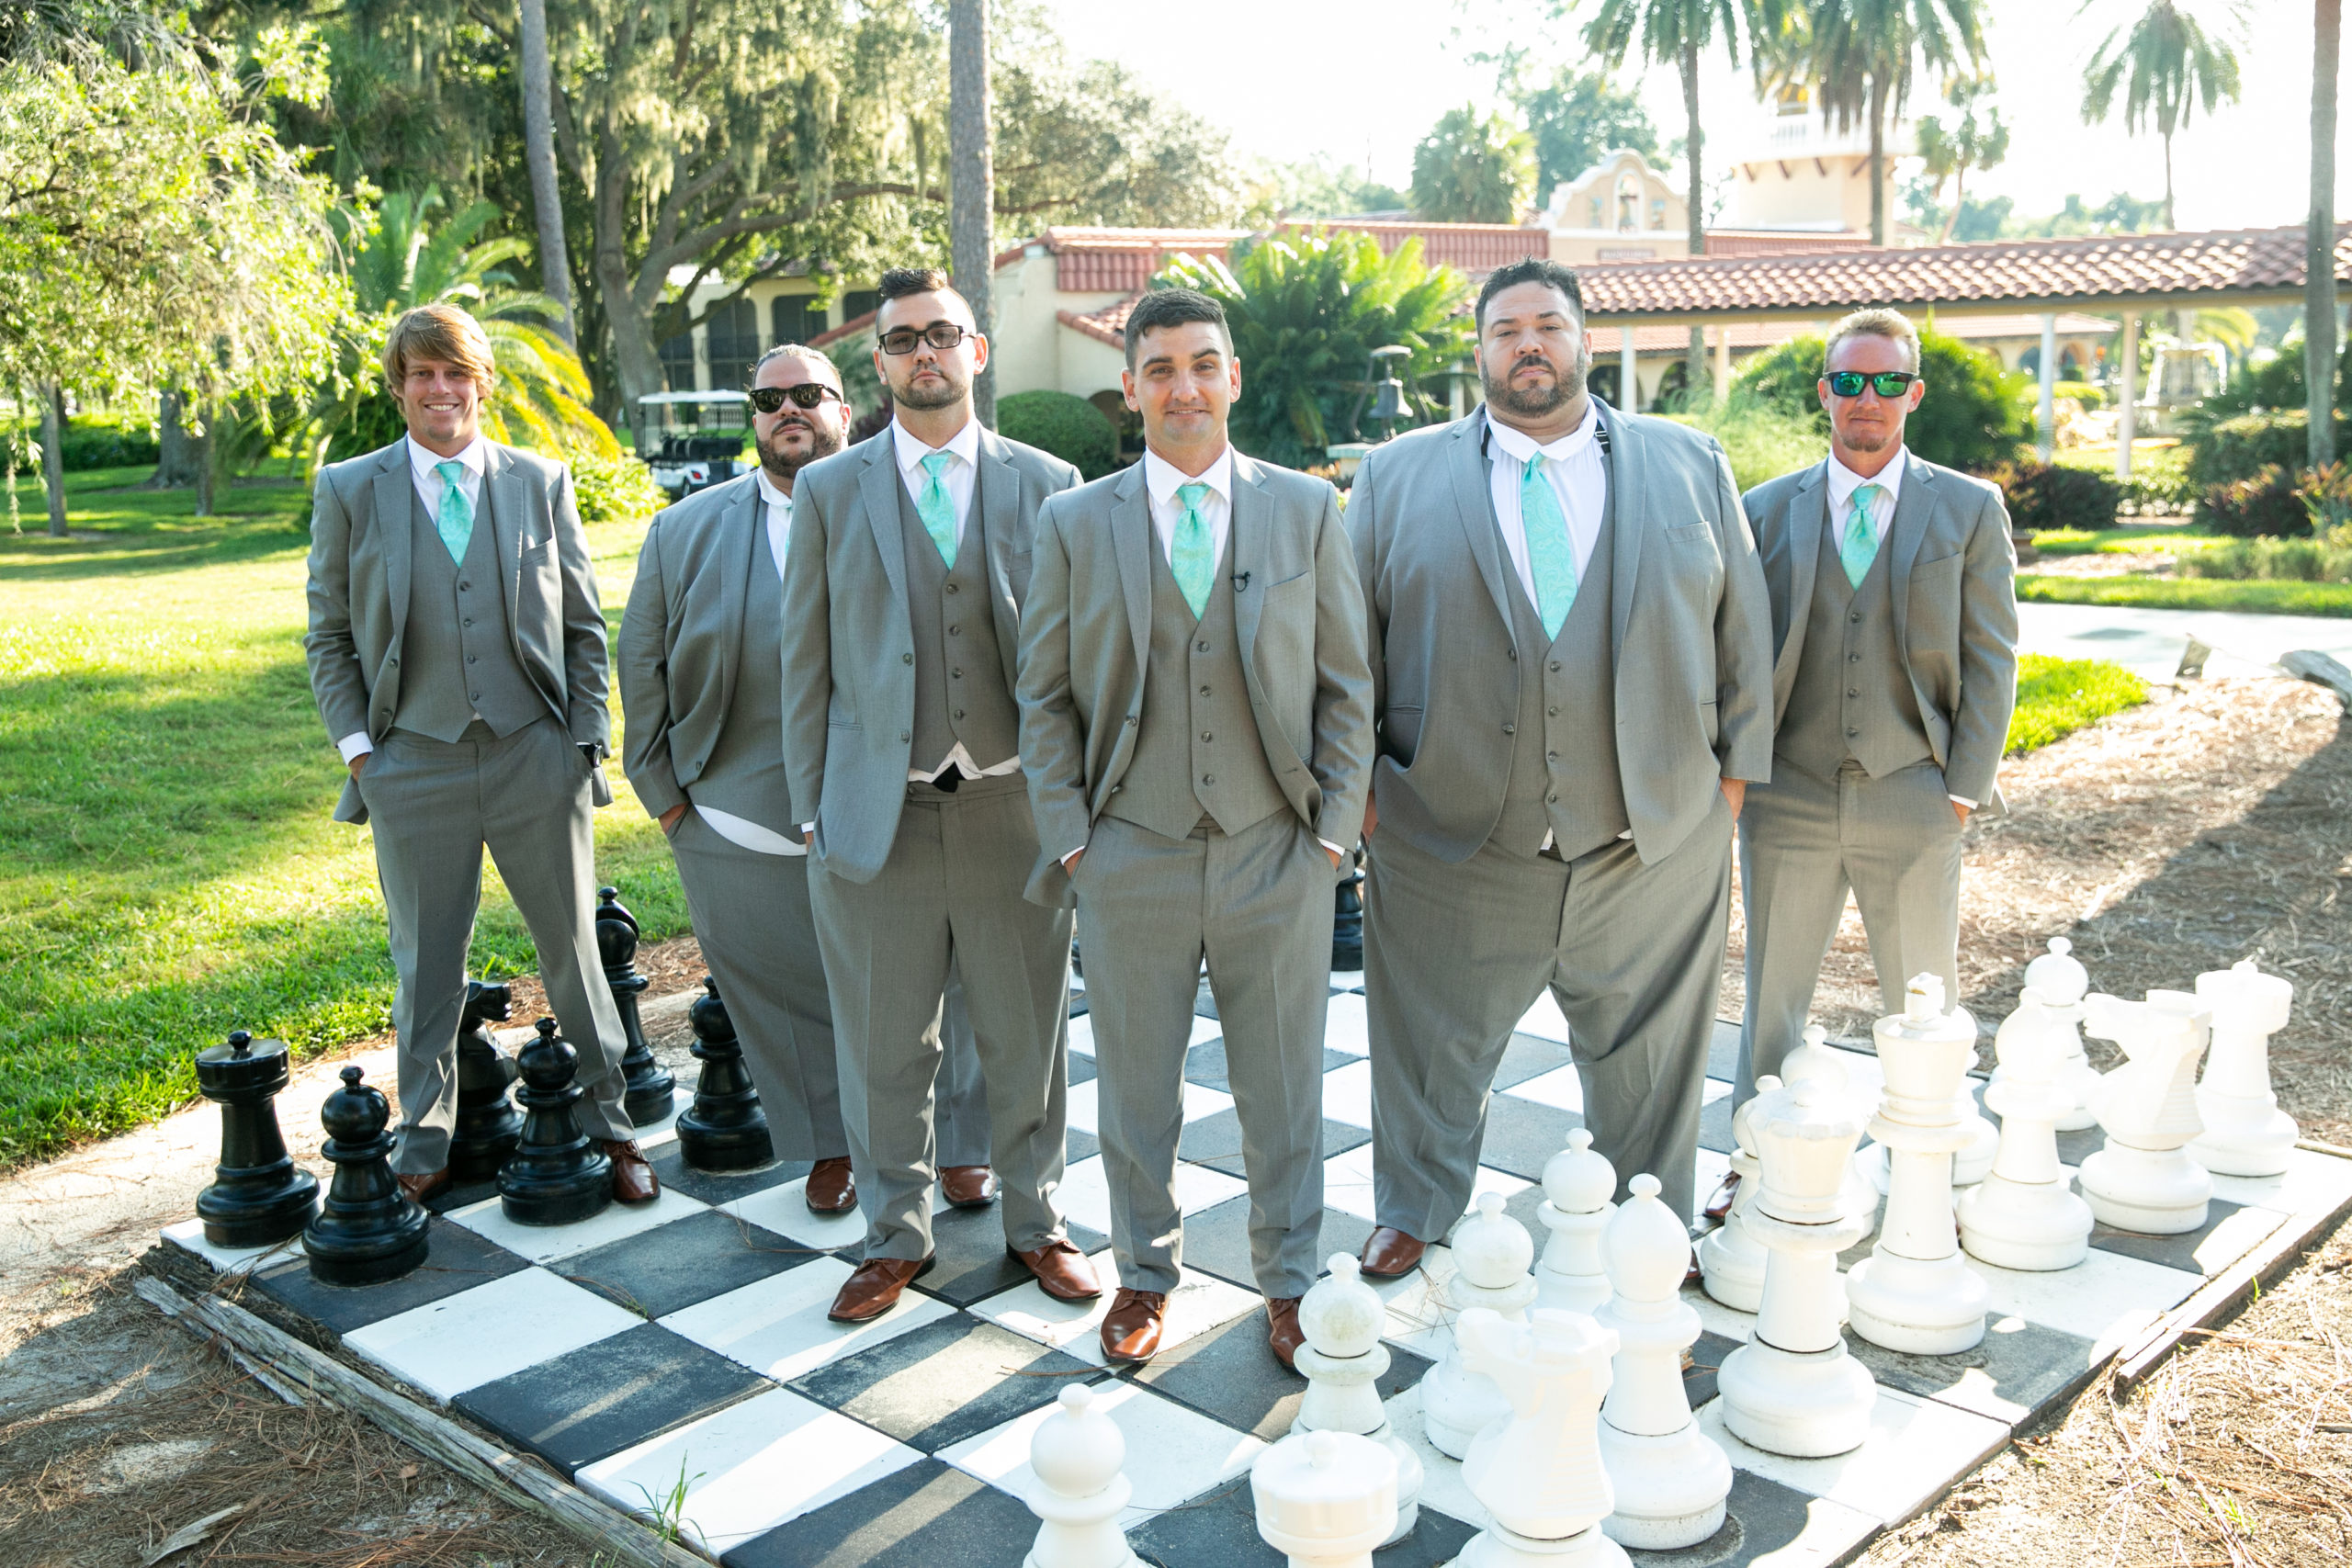 Groomsmen standing on giant chess board